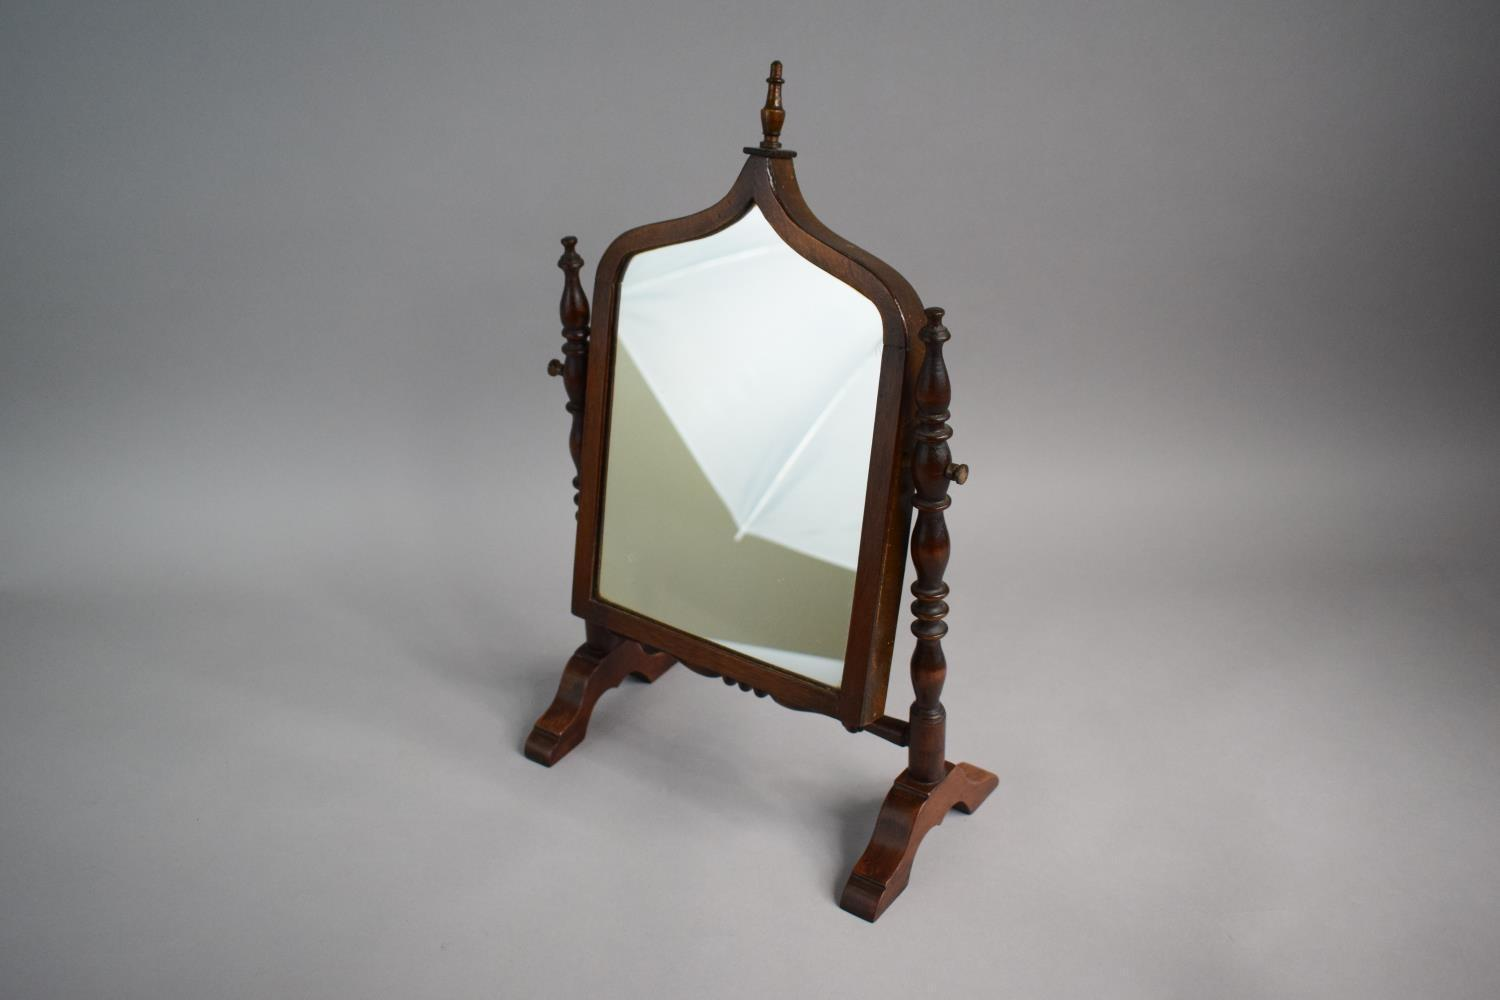 Lot 3 - A Pretty 19th Century Mahogany Framed Small Dressing Table Mirror with Turned Supports and Shaped